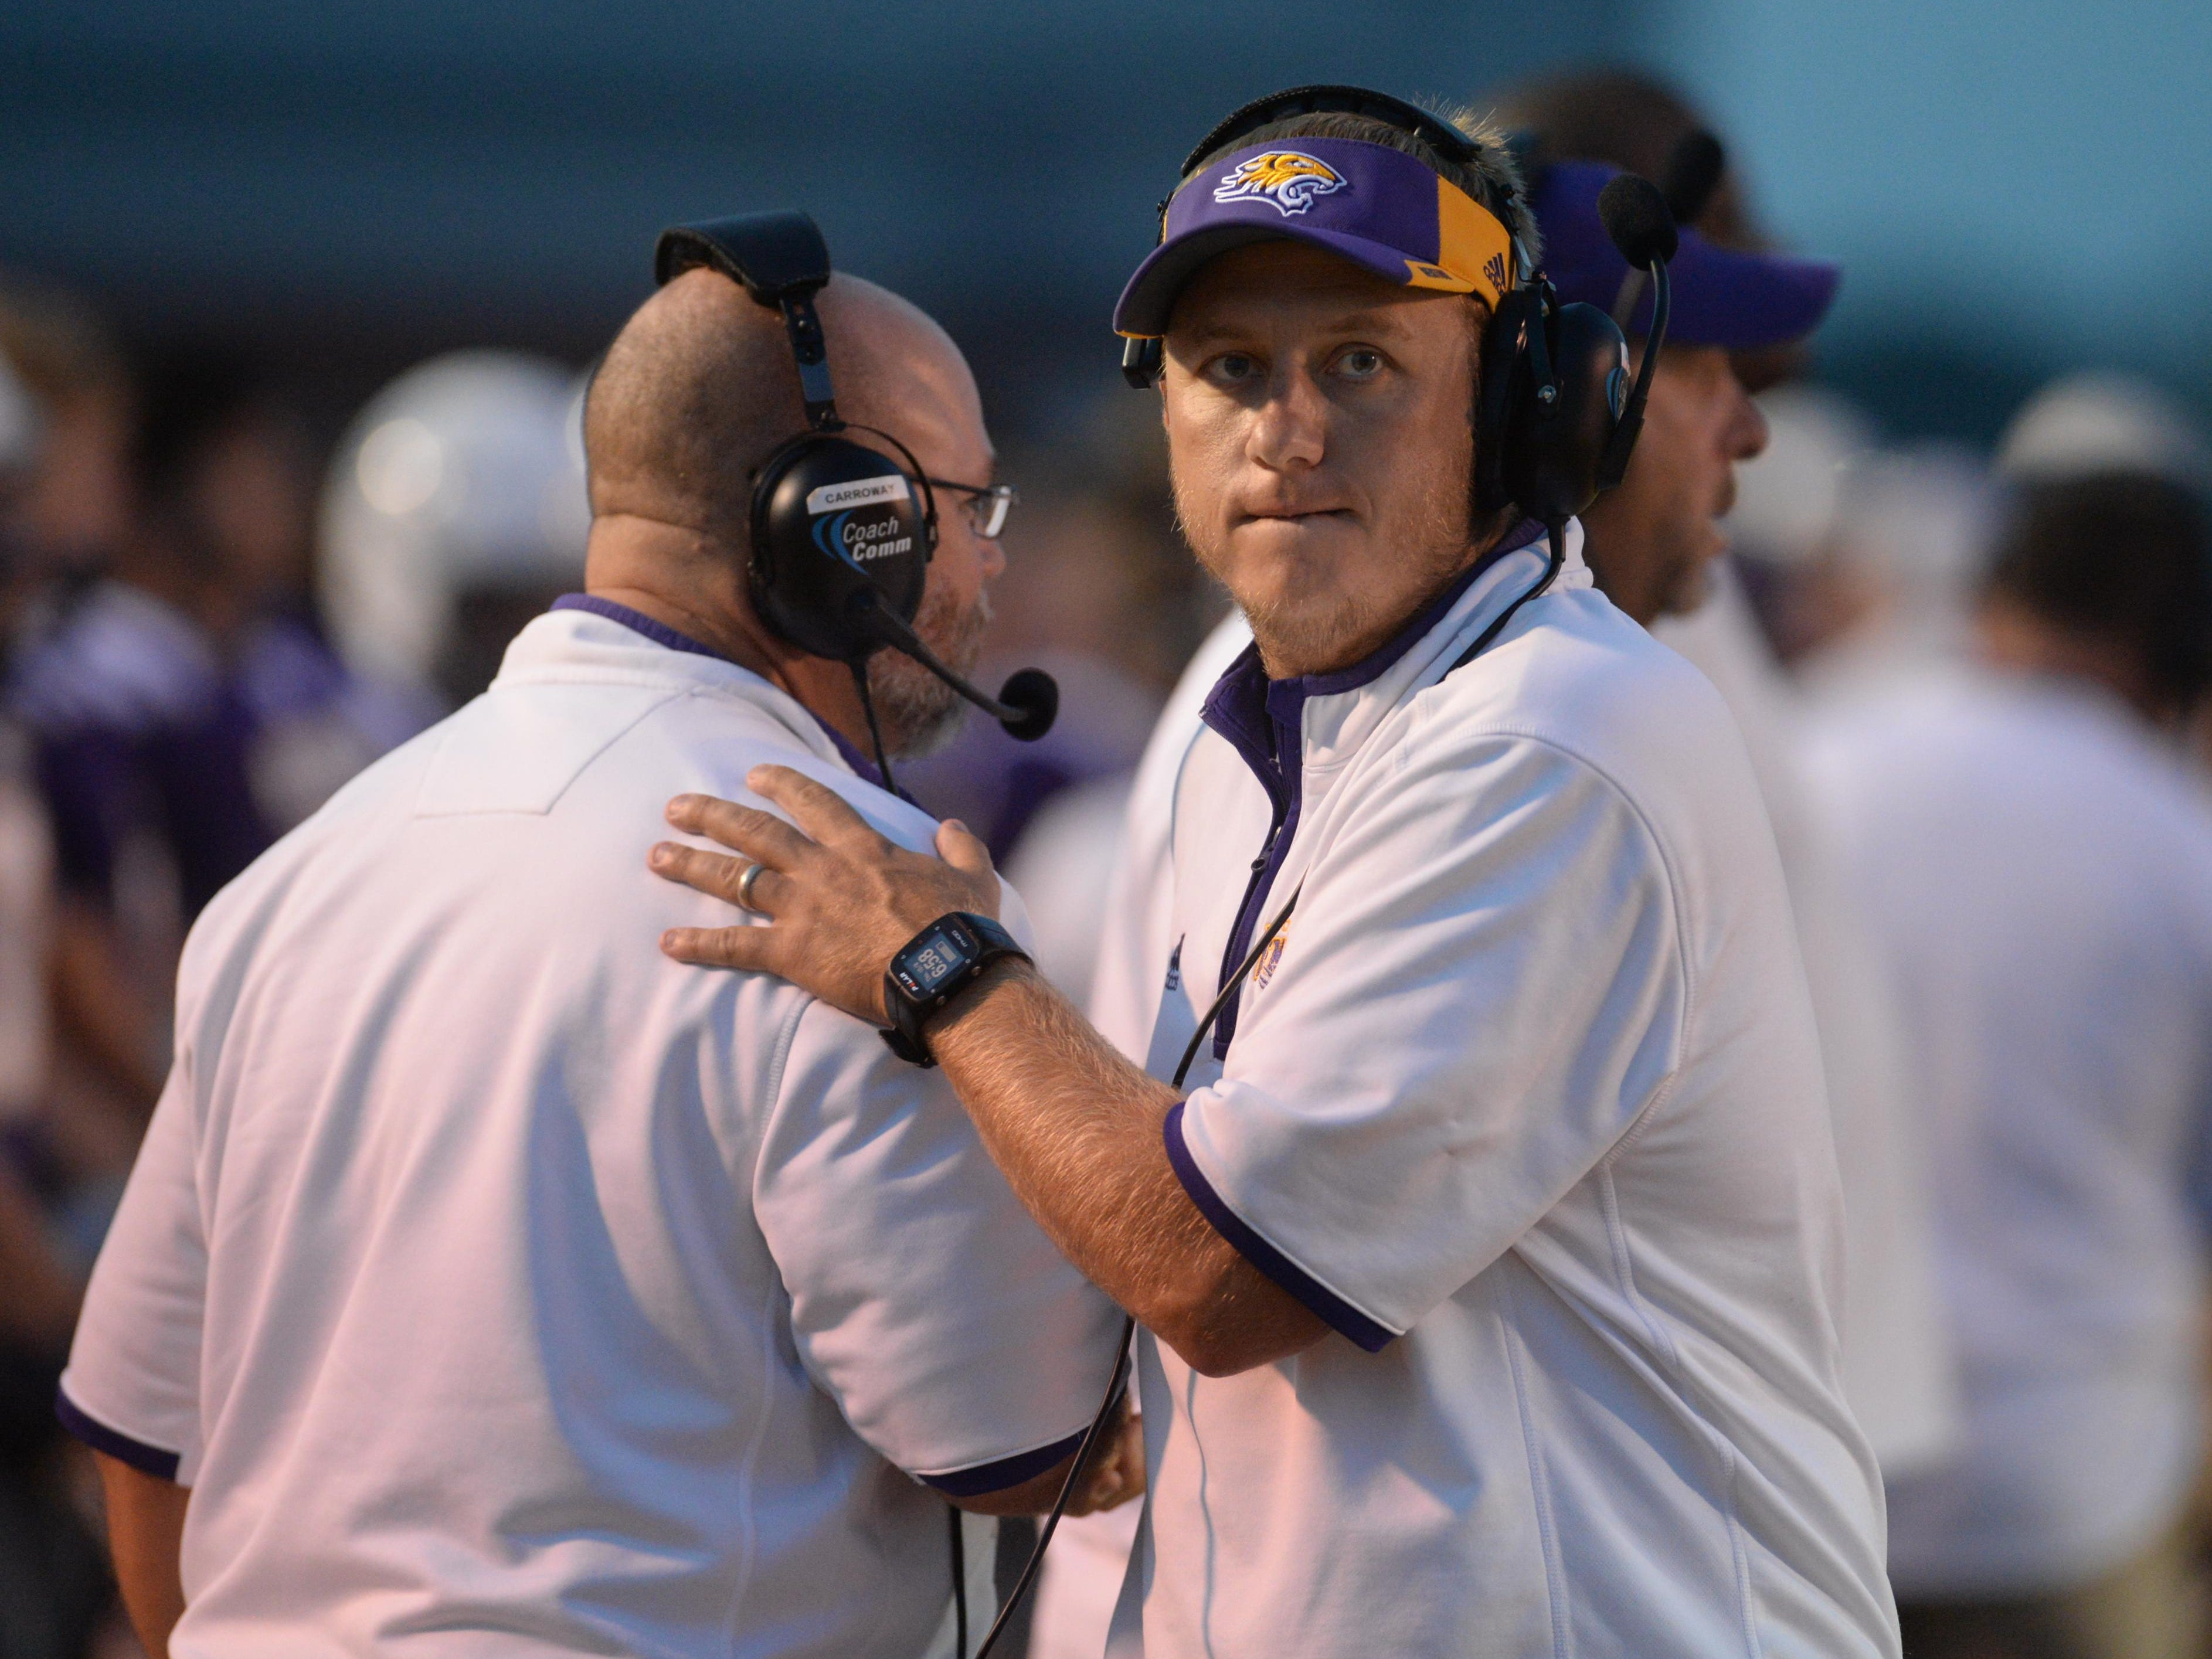 Benton head coach Reynolds Moore walks the sidelines as his team takes on Minden.